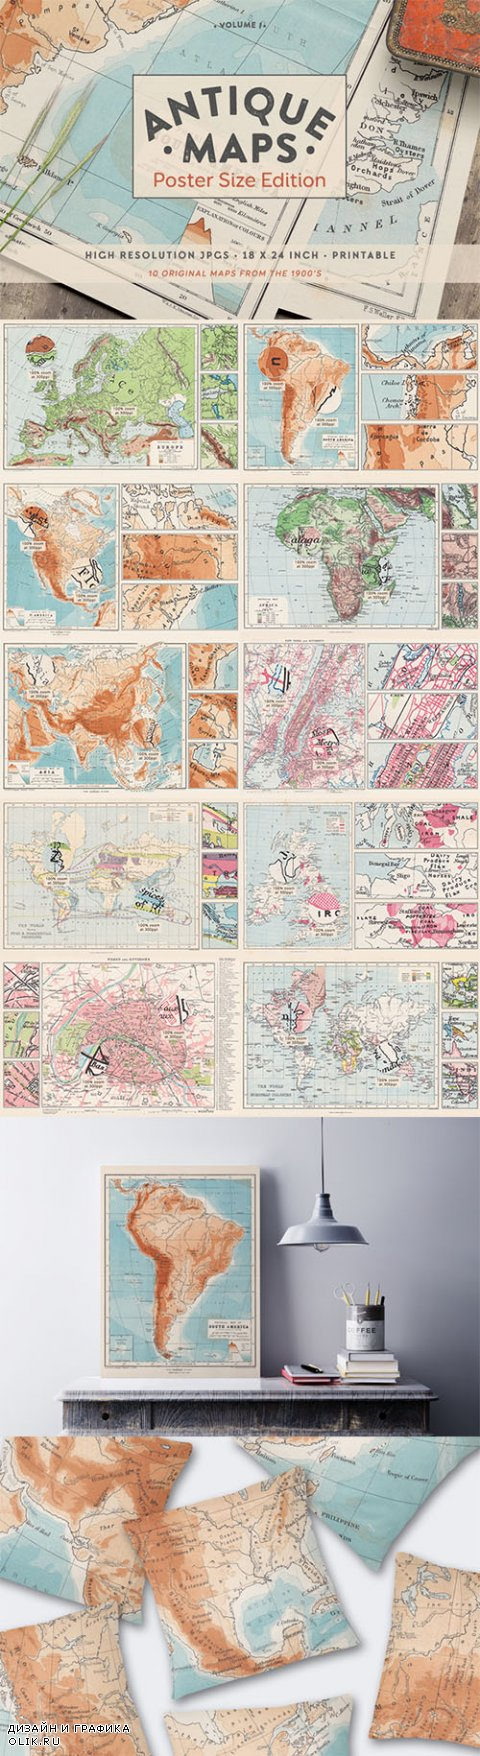 Antique Maps - Poster Size Edition - Creativemarket 514292